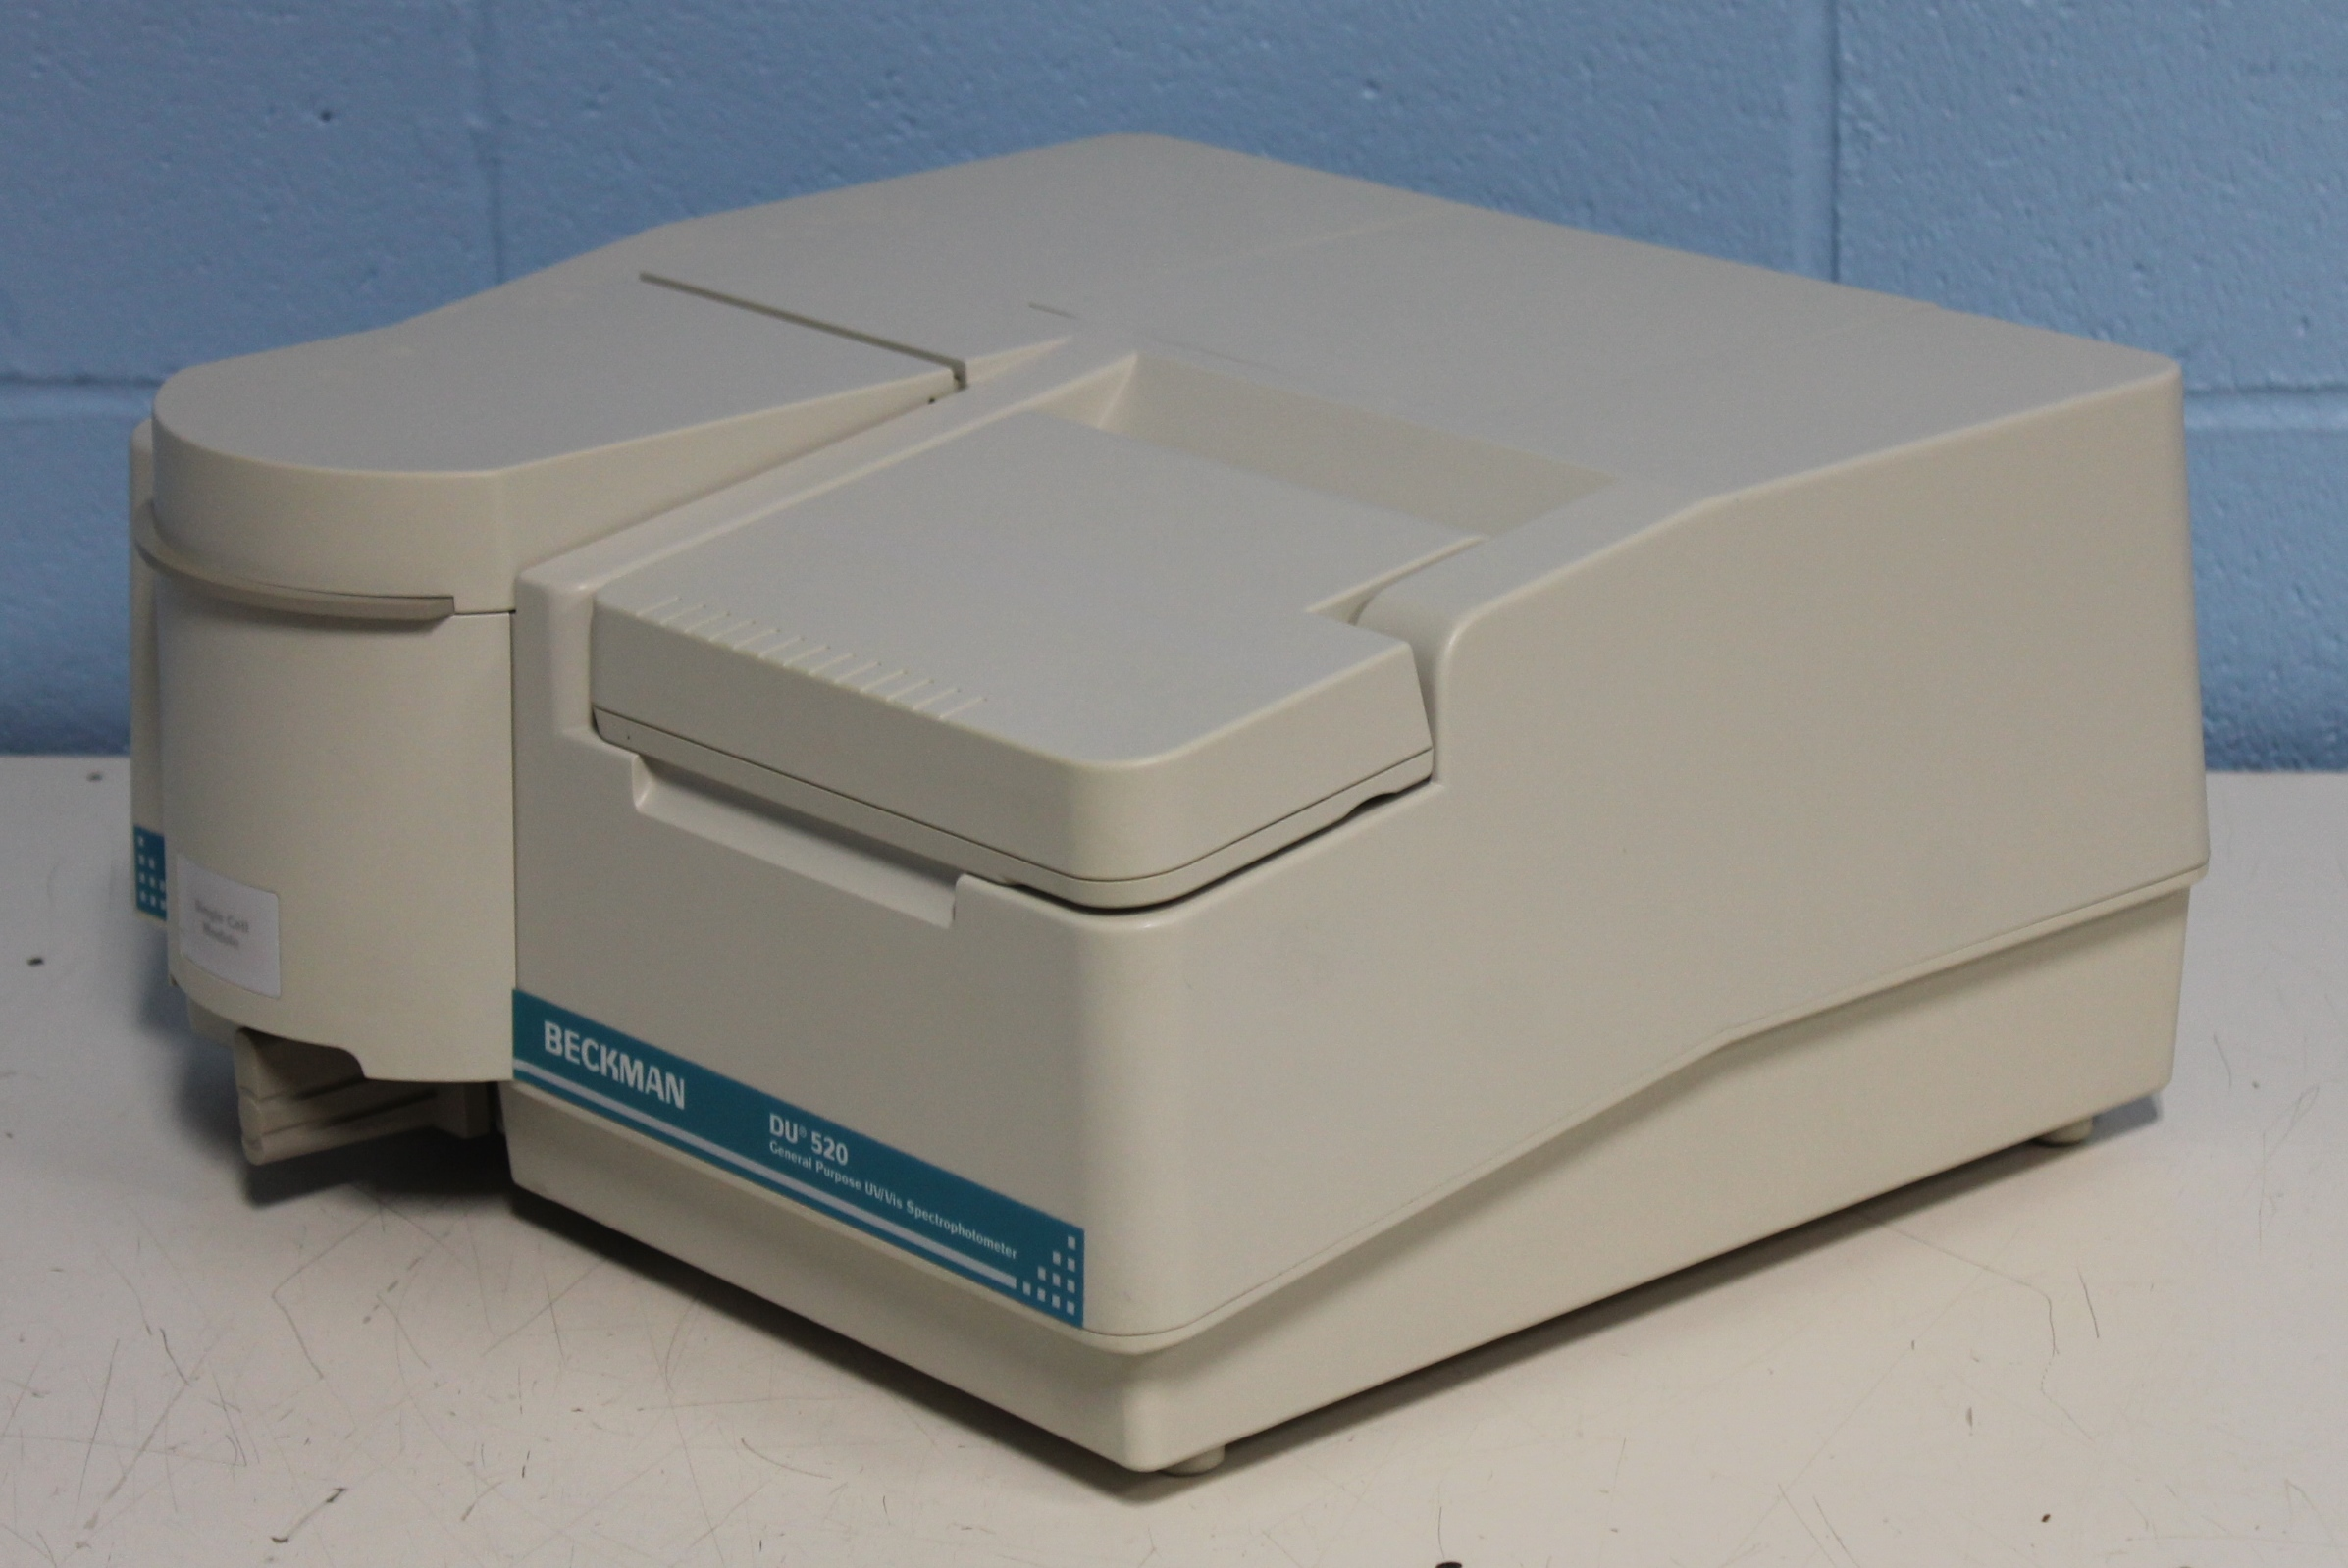 uv spectrophotometer An uv / vis spectrophotometer, will design a deuterium lamp with a halogen lamps, in order to cover the entire uv and visible light wavelength.